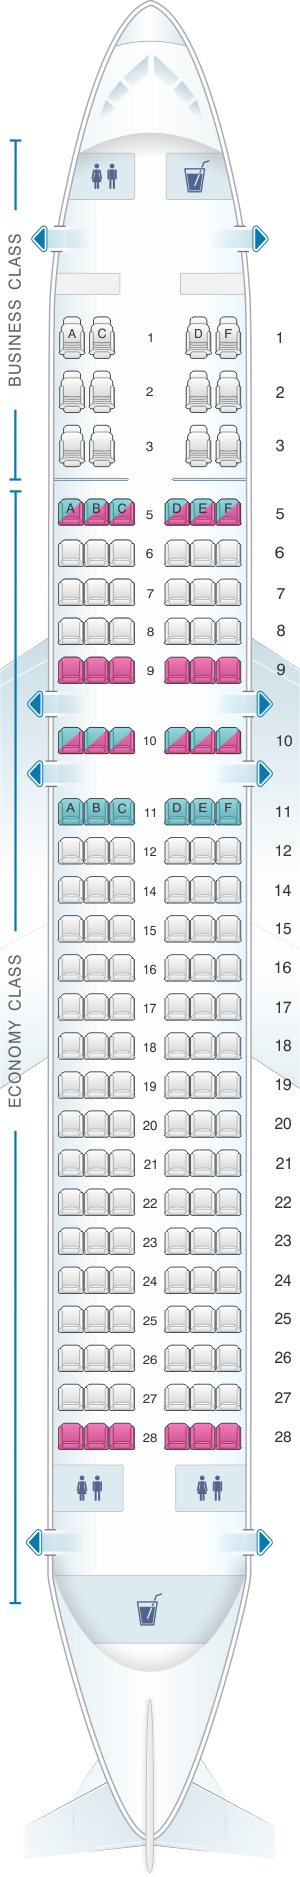 allegiant flight map with Silkair Airbus A320 200 on Seat Map Mcdonnell Douglas Md 88 Delta Airlines Best Seats In Plane furthermore Air France Charge Obese Passengers Fat Tax April 1st in addition British Airways EasyJet Ryanair Ranked Airline Legroom League moreover Vintage Airline Seat Map American Airlines Boeing 707 323 besides Terminal Map.